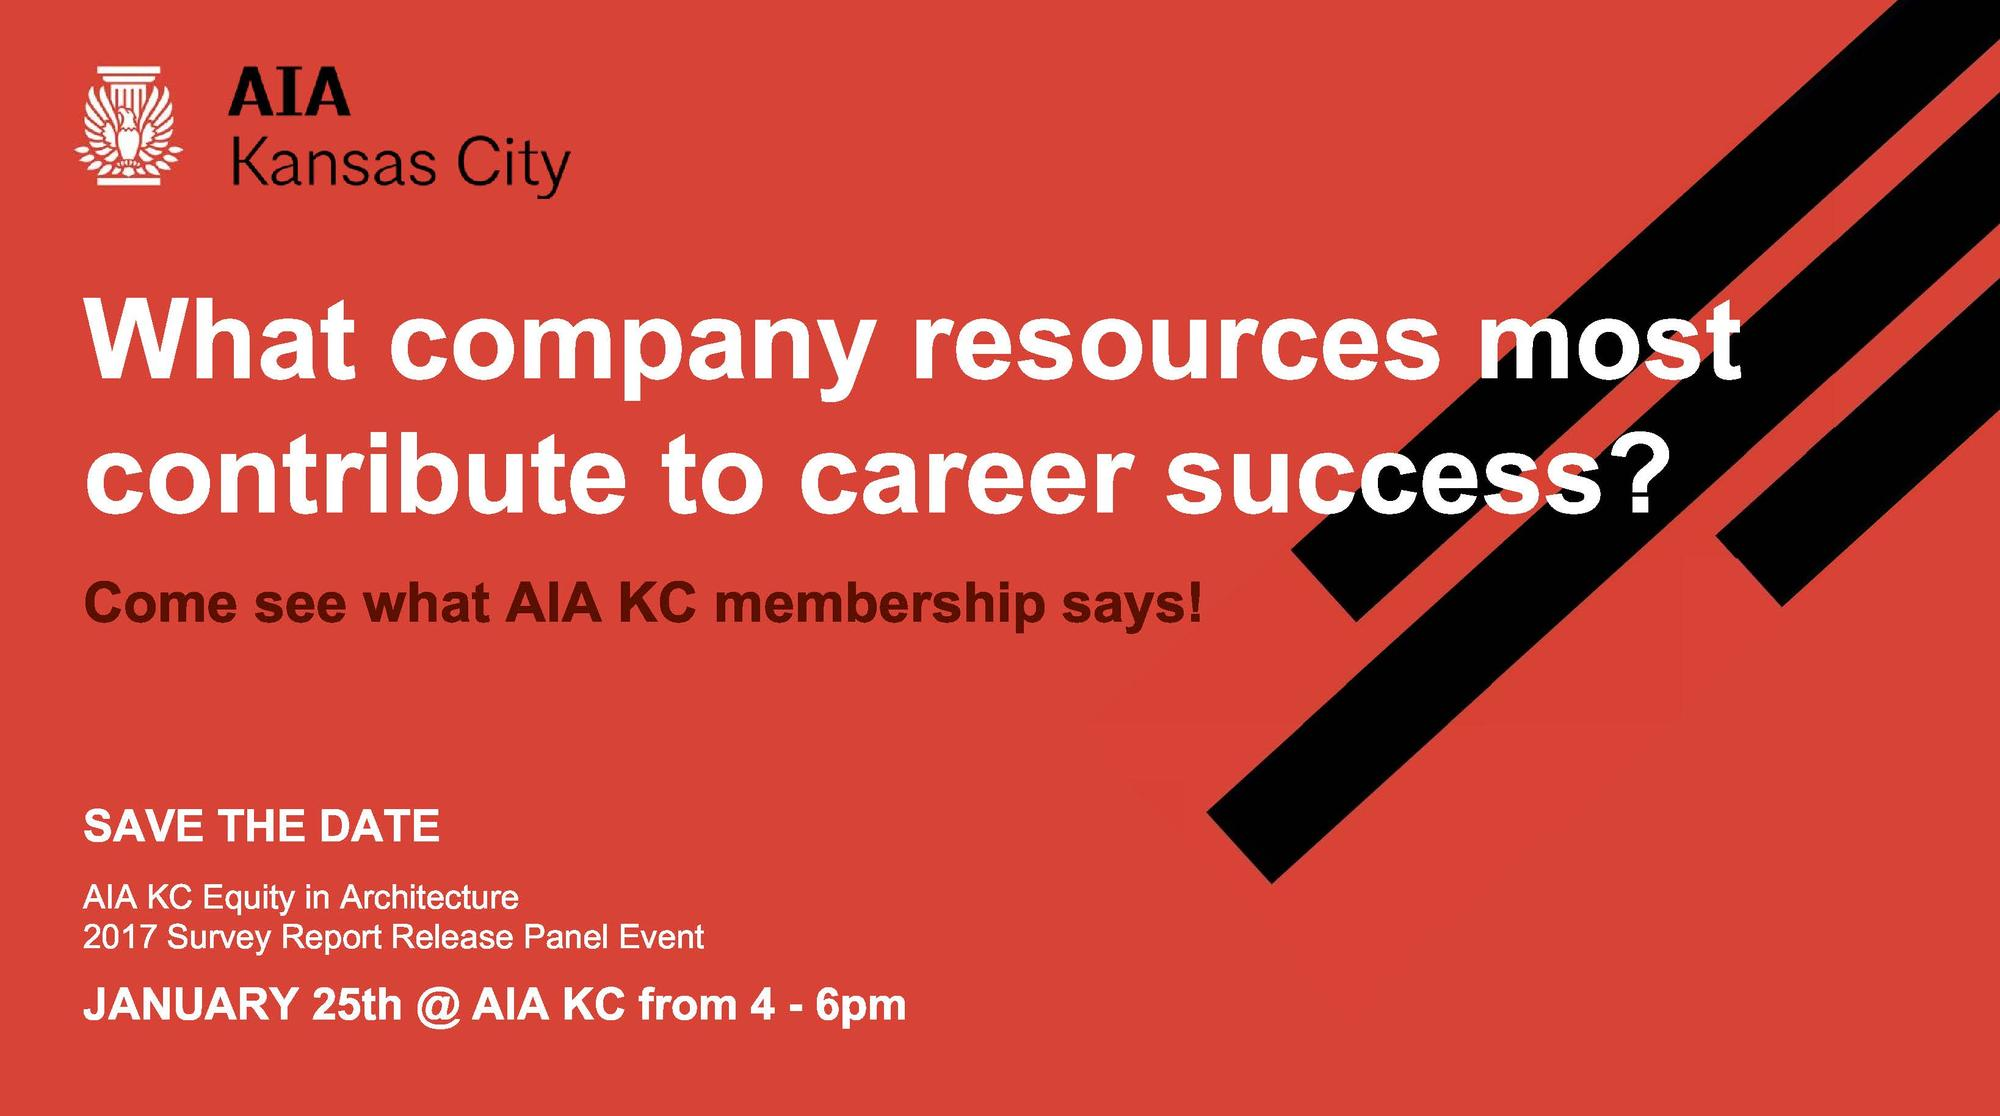 AIA Kansas City Equity in Architecture Survey Report Release Panel Event